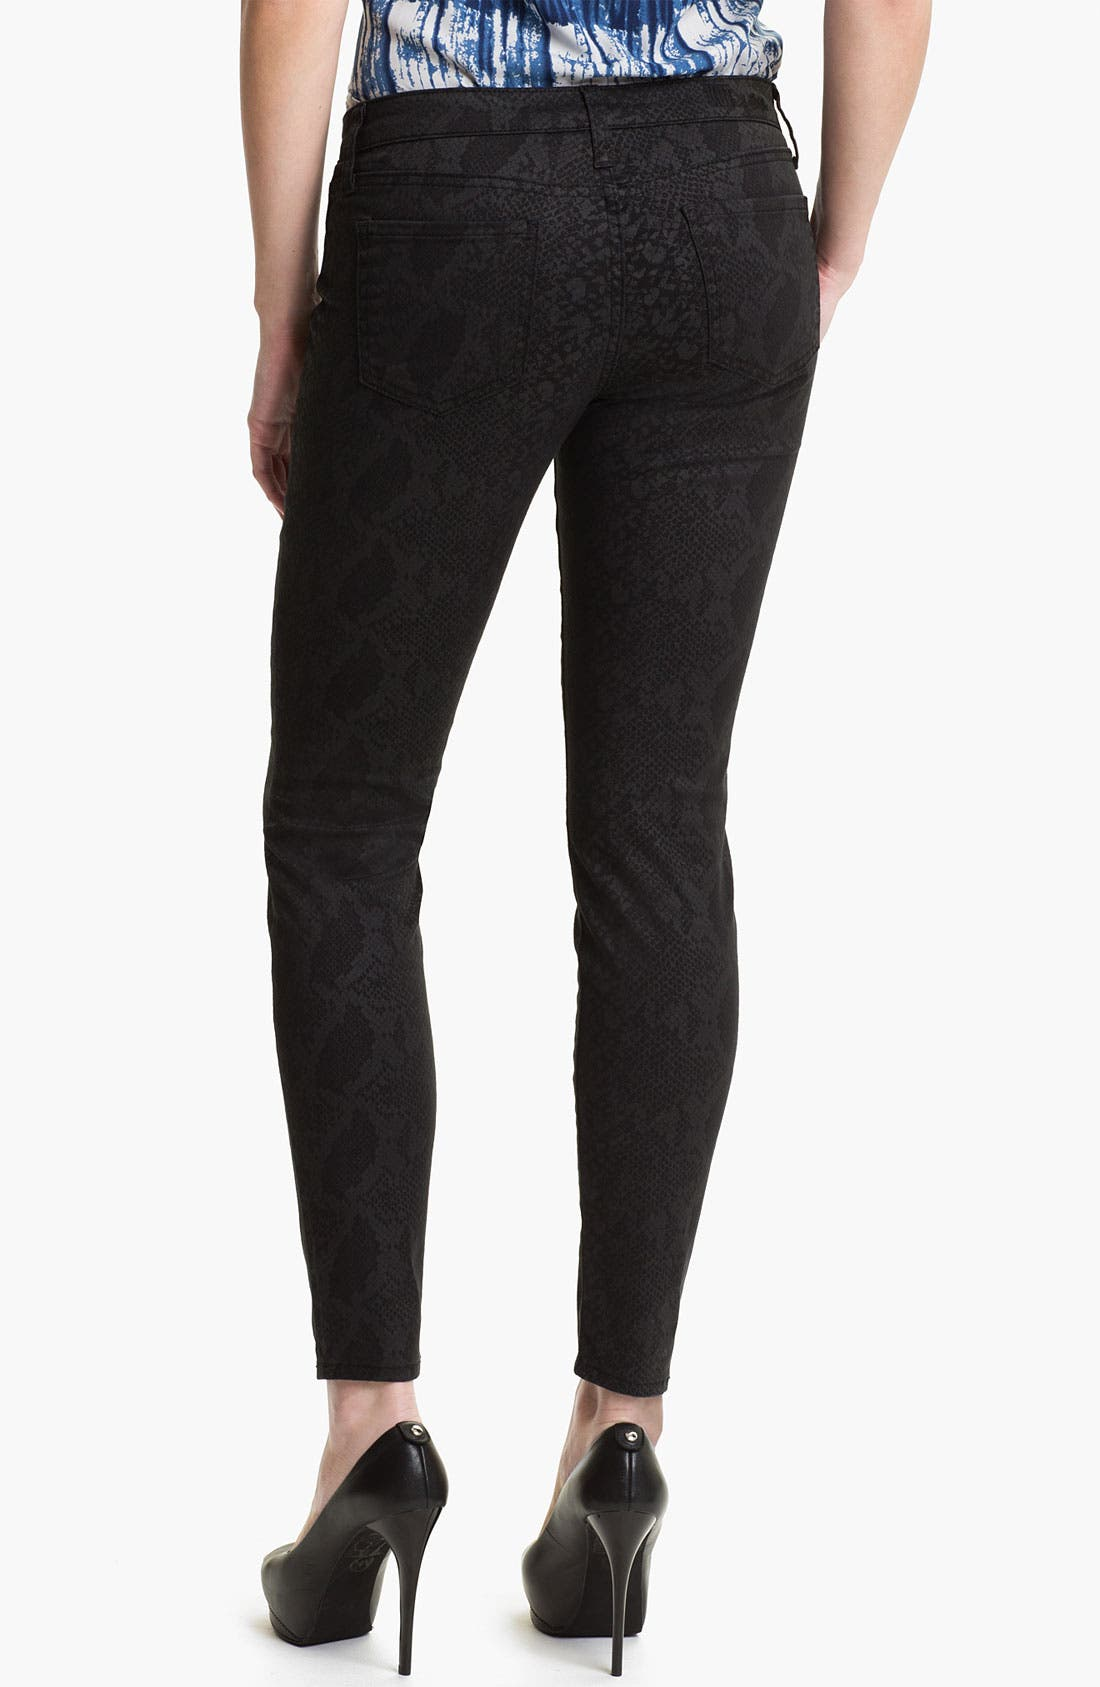 Alternate Image 2  - KUT from the Kloth 'Jennifer' Skinny Stretch Jeans (Snakeskin Print) (Online Exclusive)